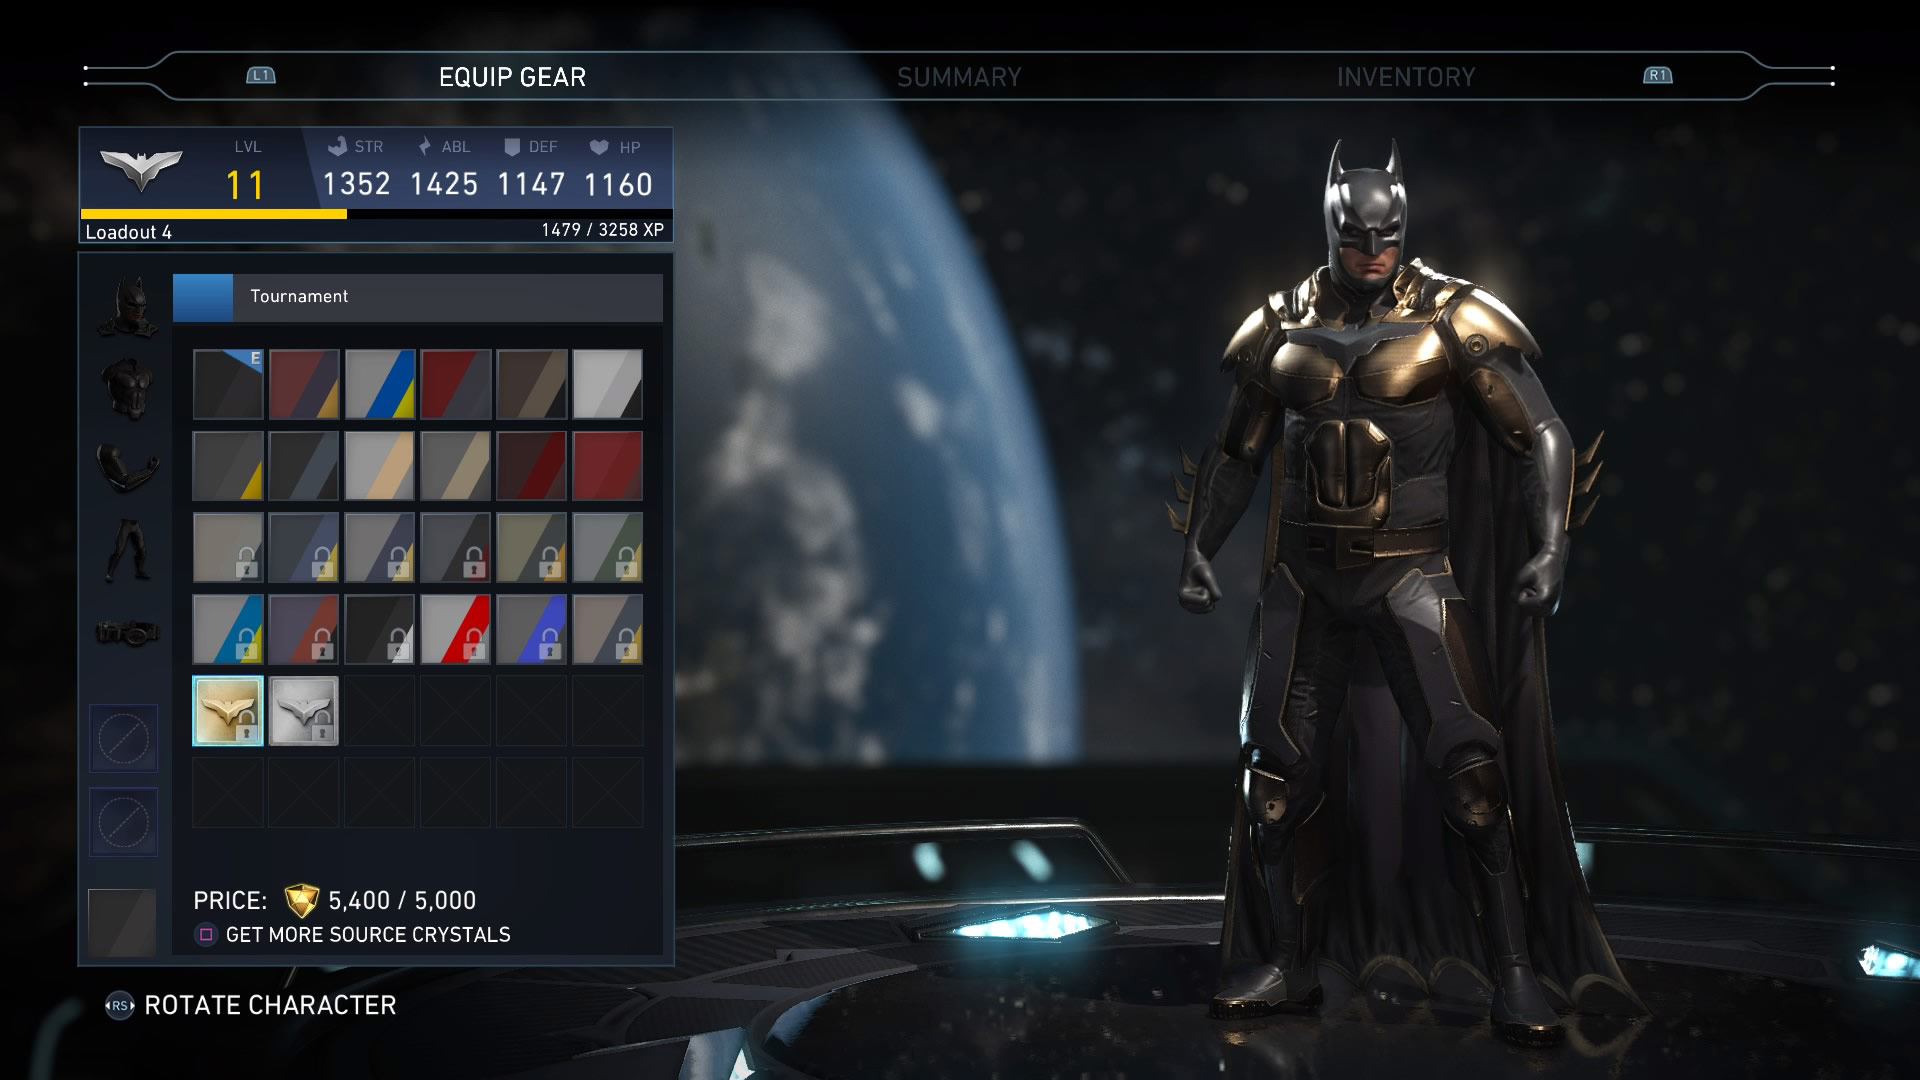 New shaders and Bizarro skin in Injustice 2 6 out of 6 image gallery